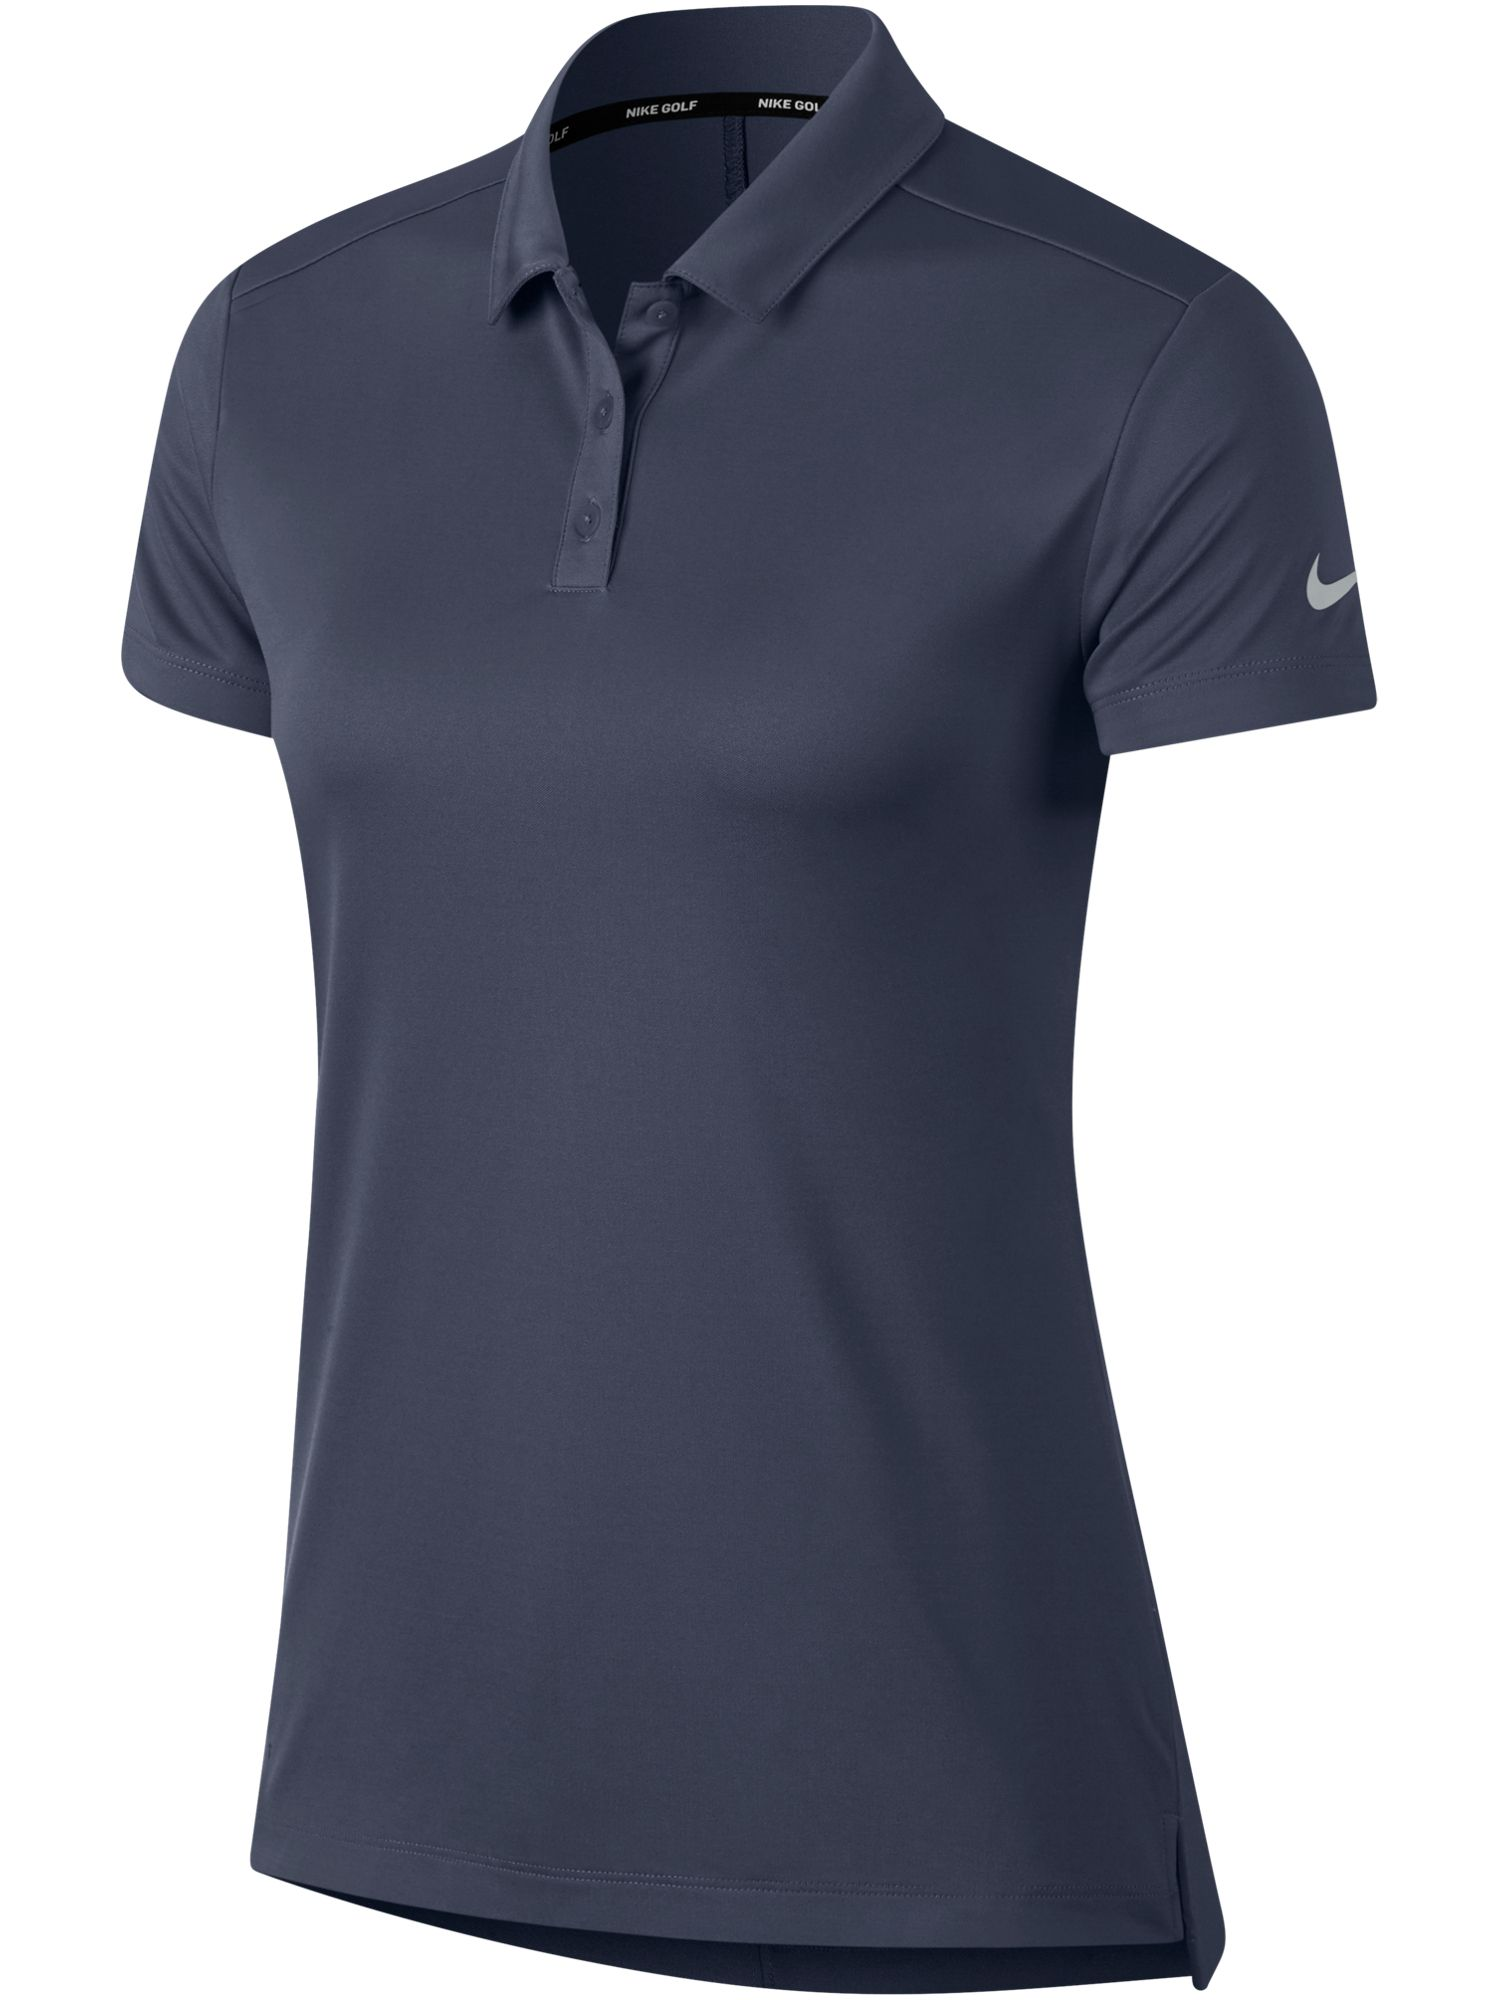 Nike Golf Dry Short Sleeve Polo, Blue